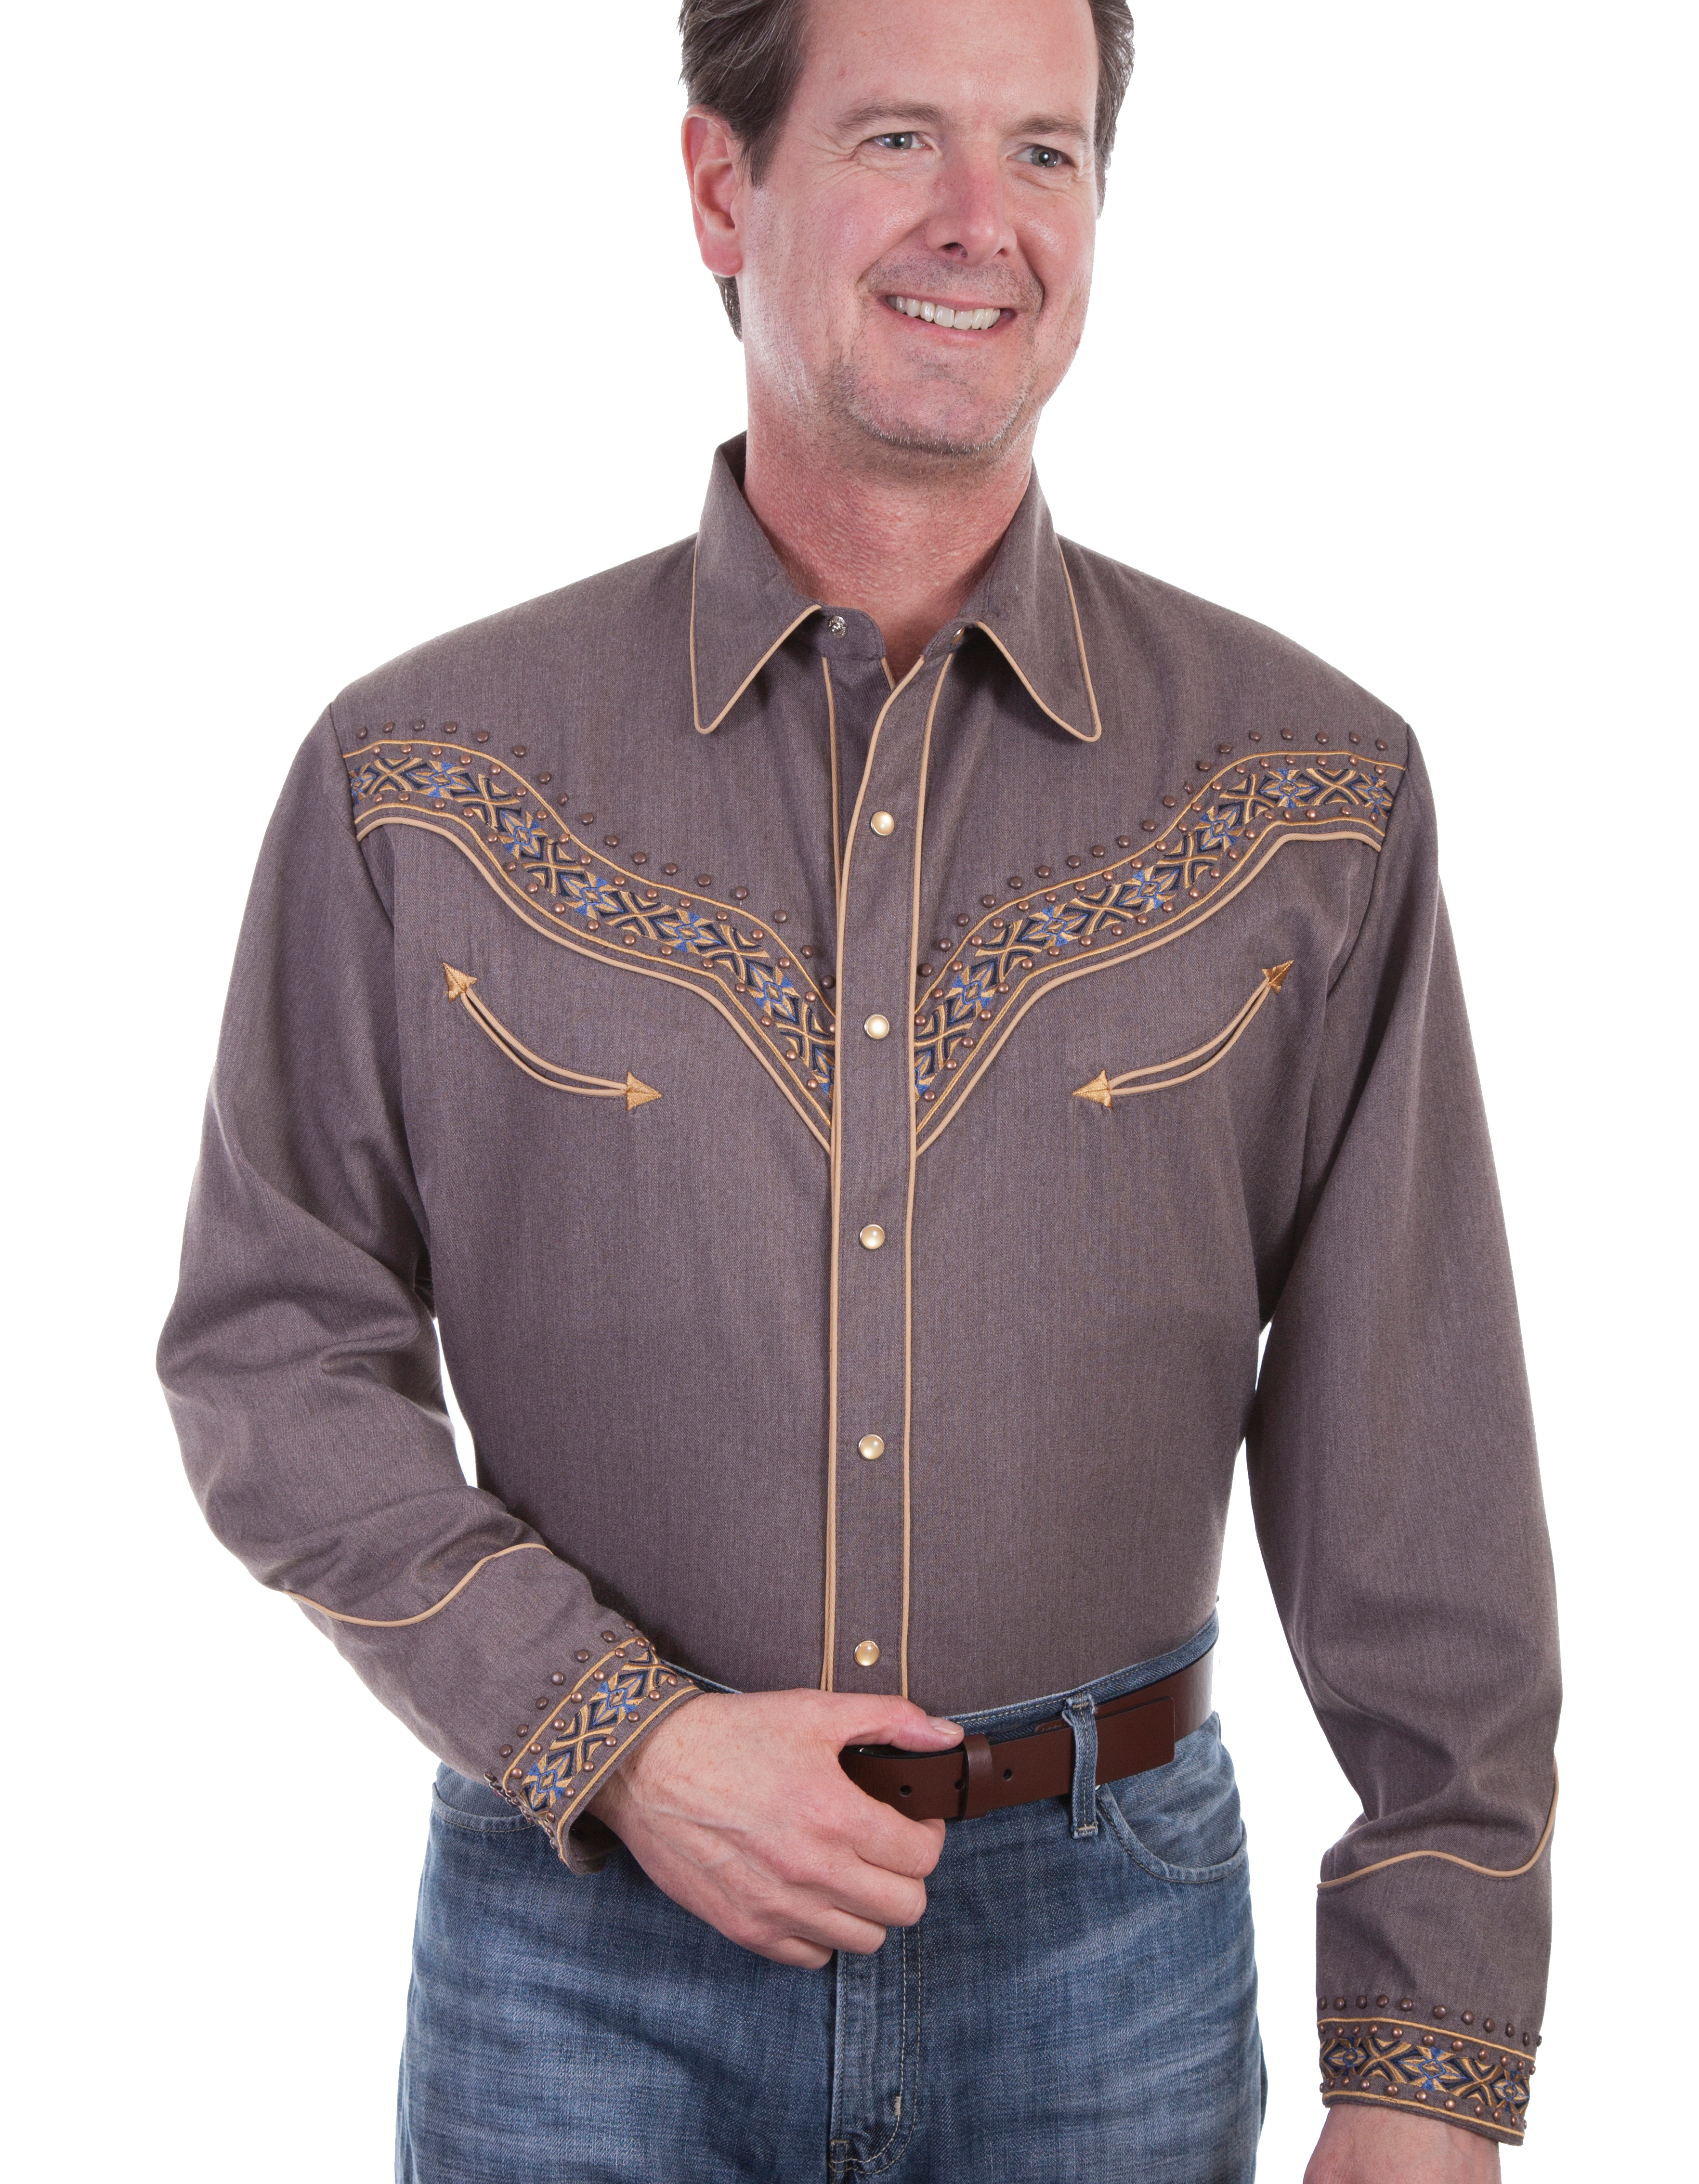 This Scully Men's Heather Brown Studded Retro Western Shirt is embroidered on the front and back yokes with antique brass studs and pearl snaps including smiley pockets and a piped vintage look.